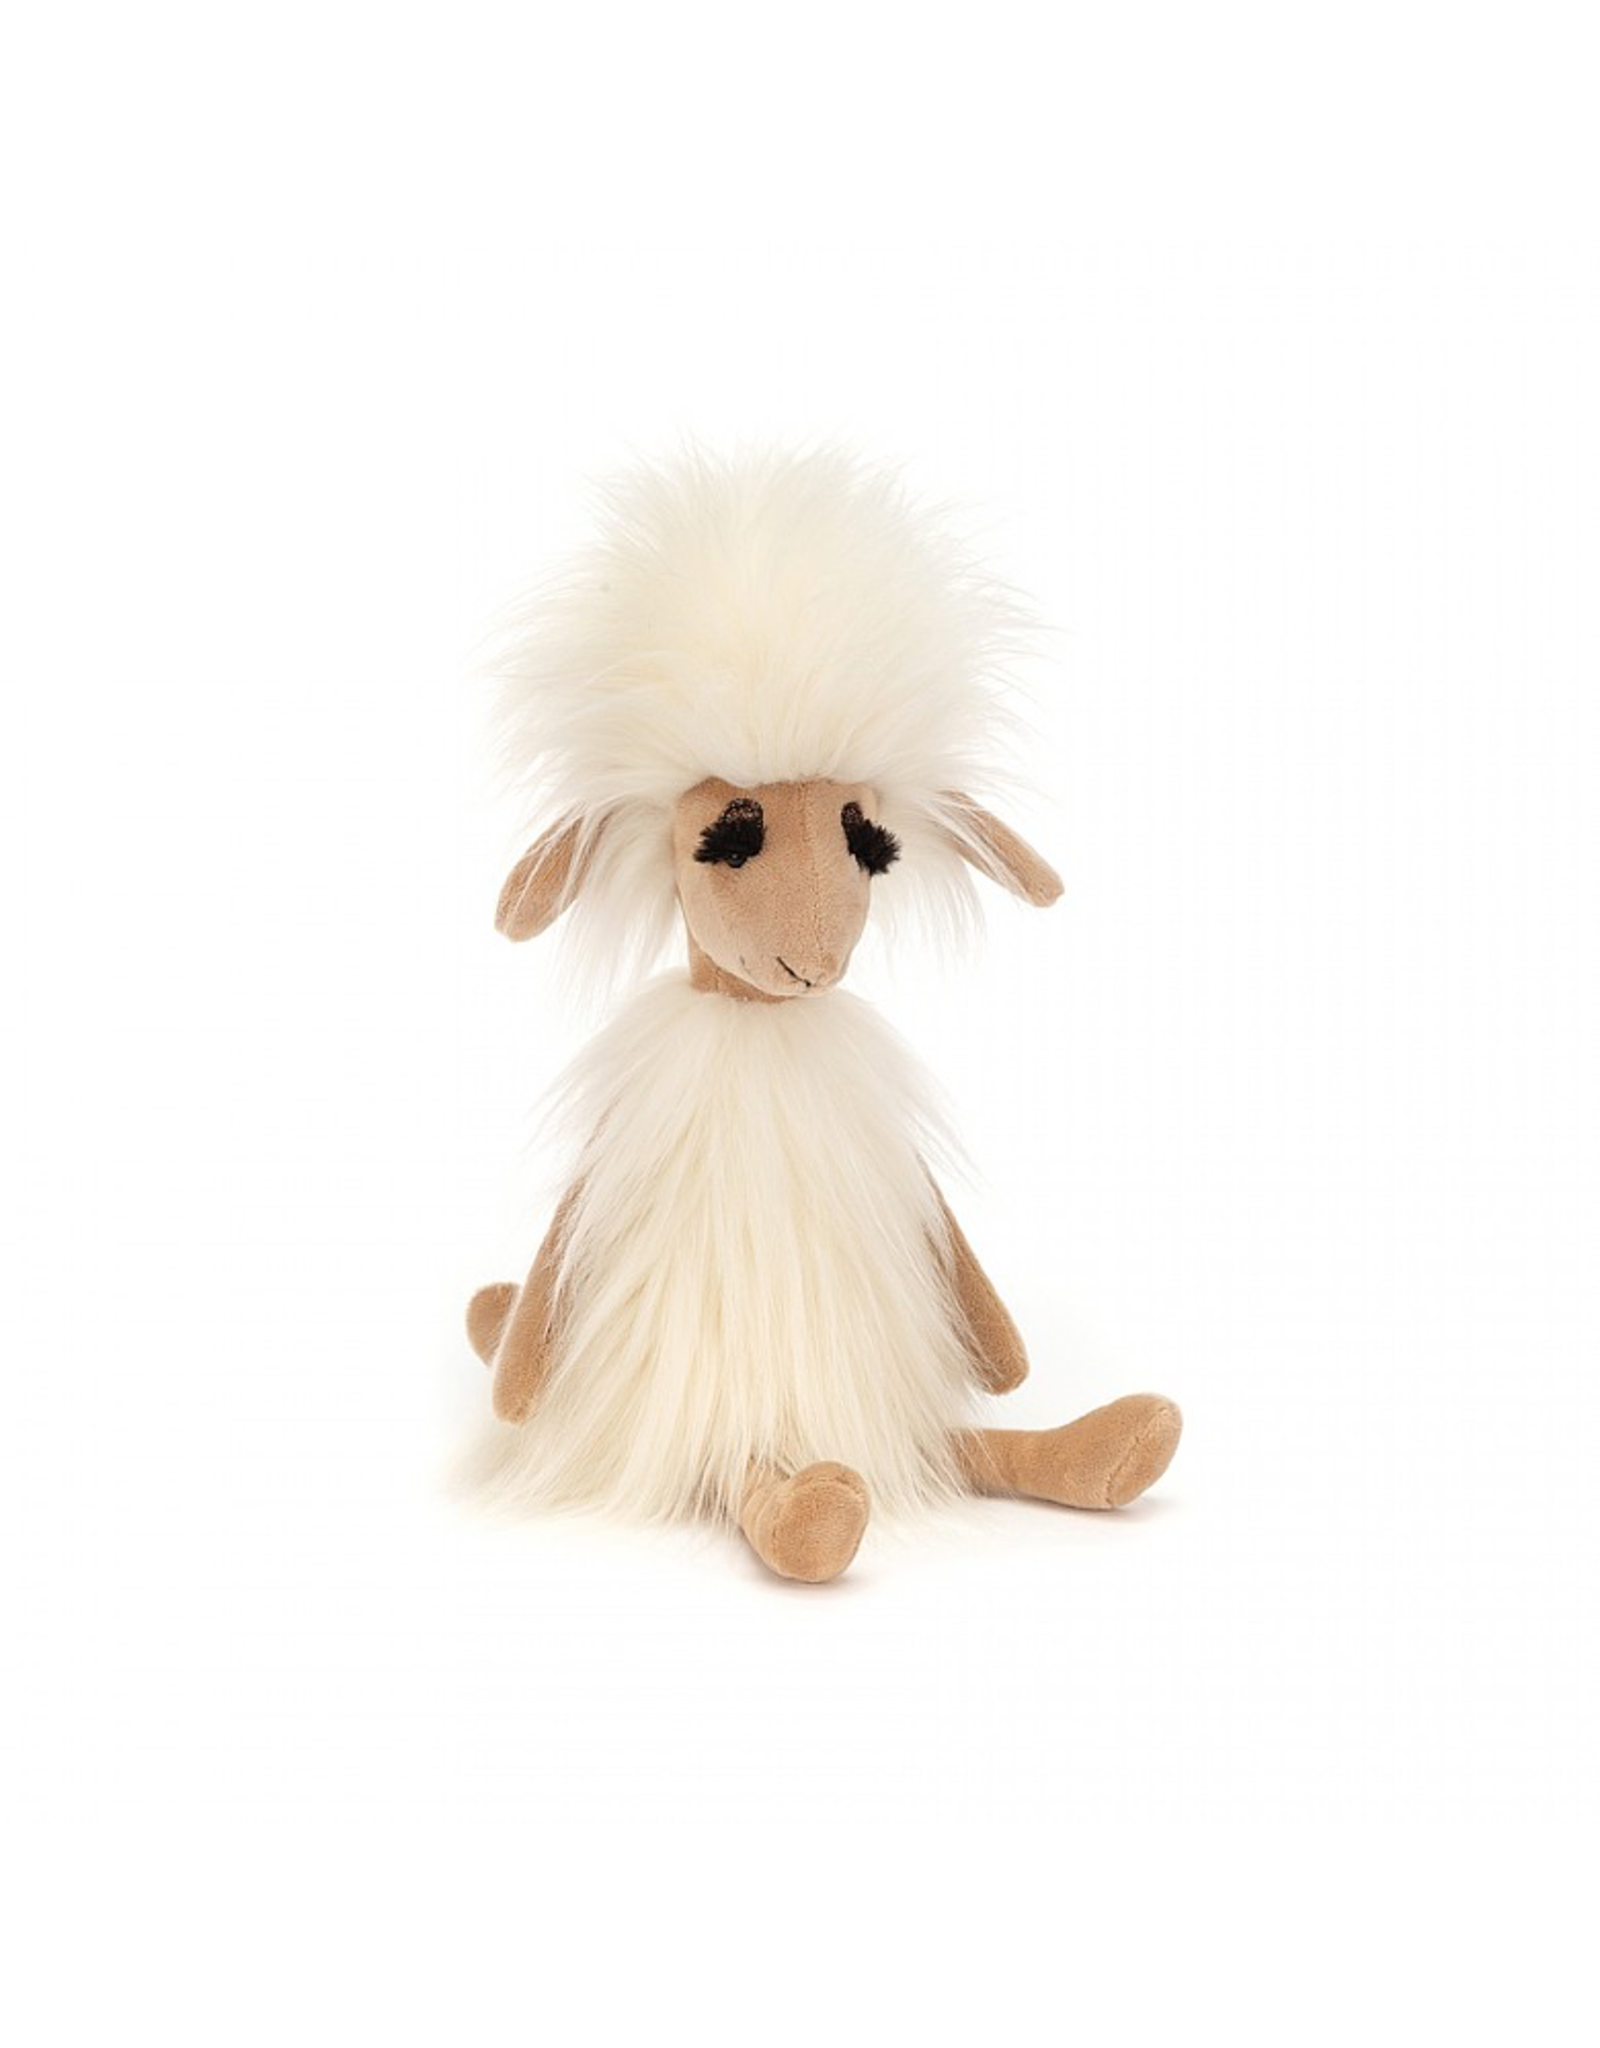 jellycat jellycat swellegant sophie sheep